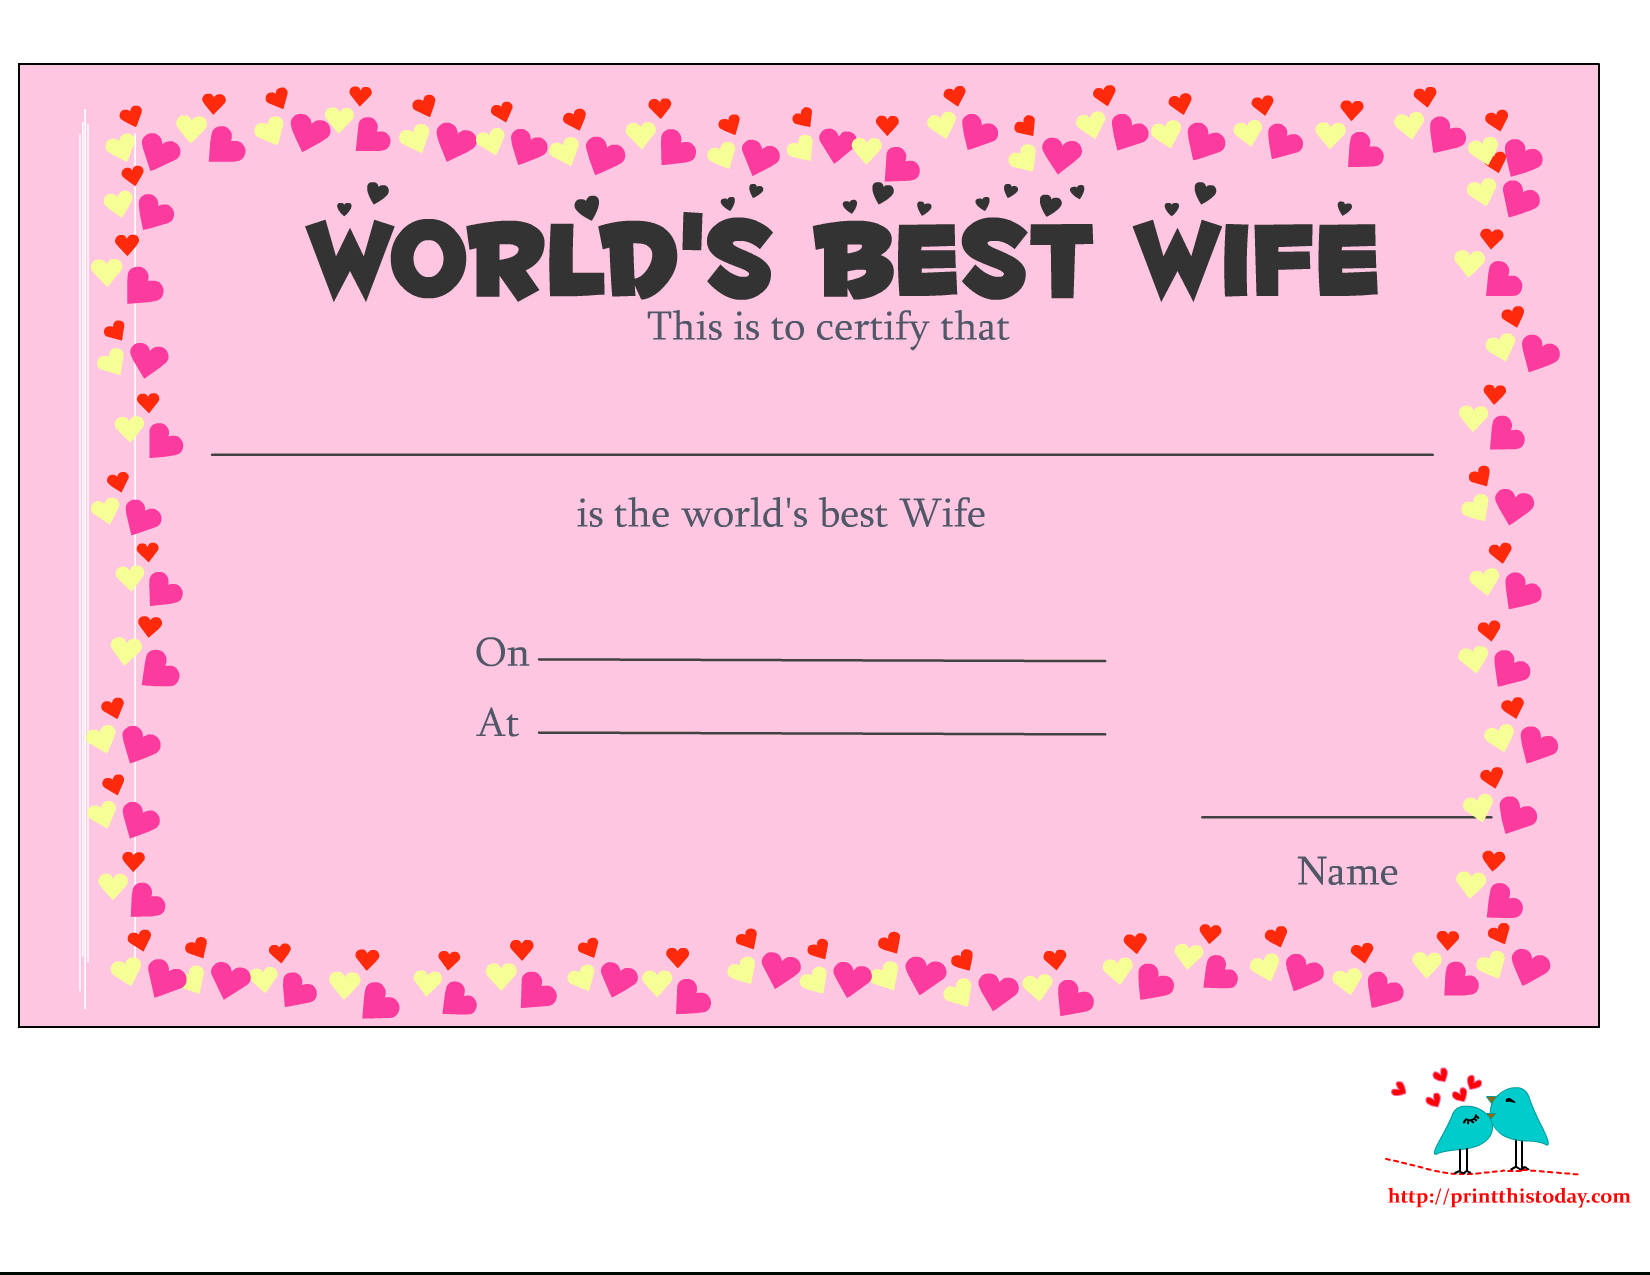 Free Printable World's Best Wife Certificates inside Love Certificate Templates